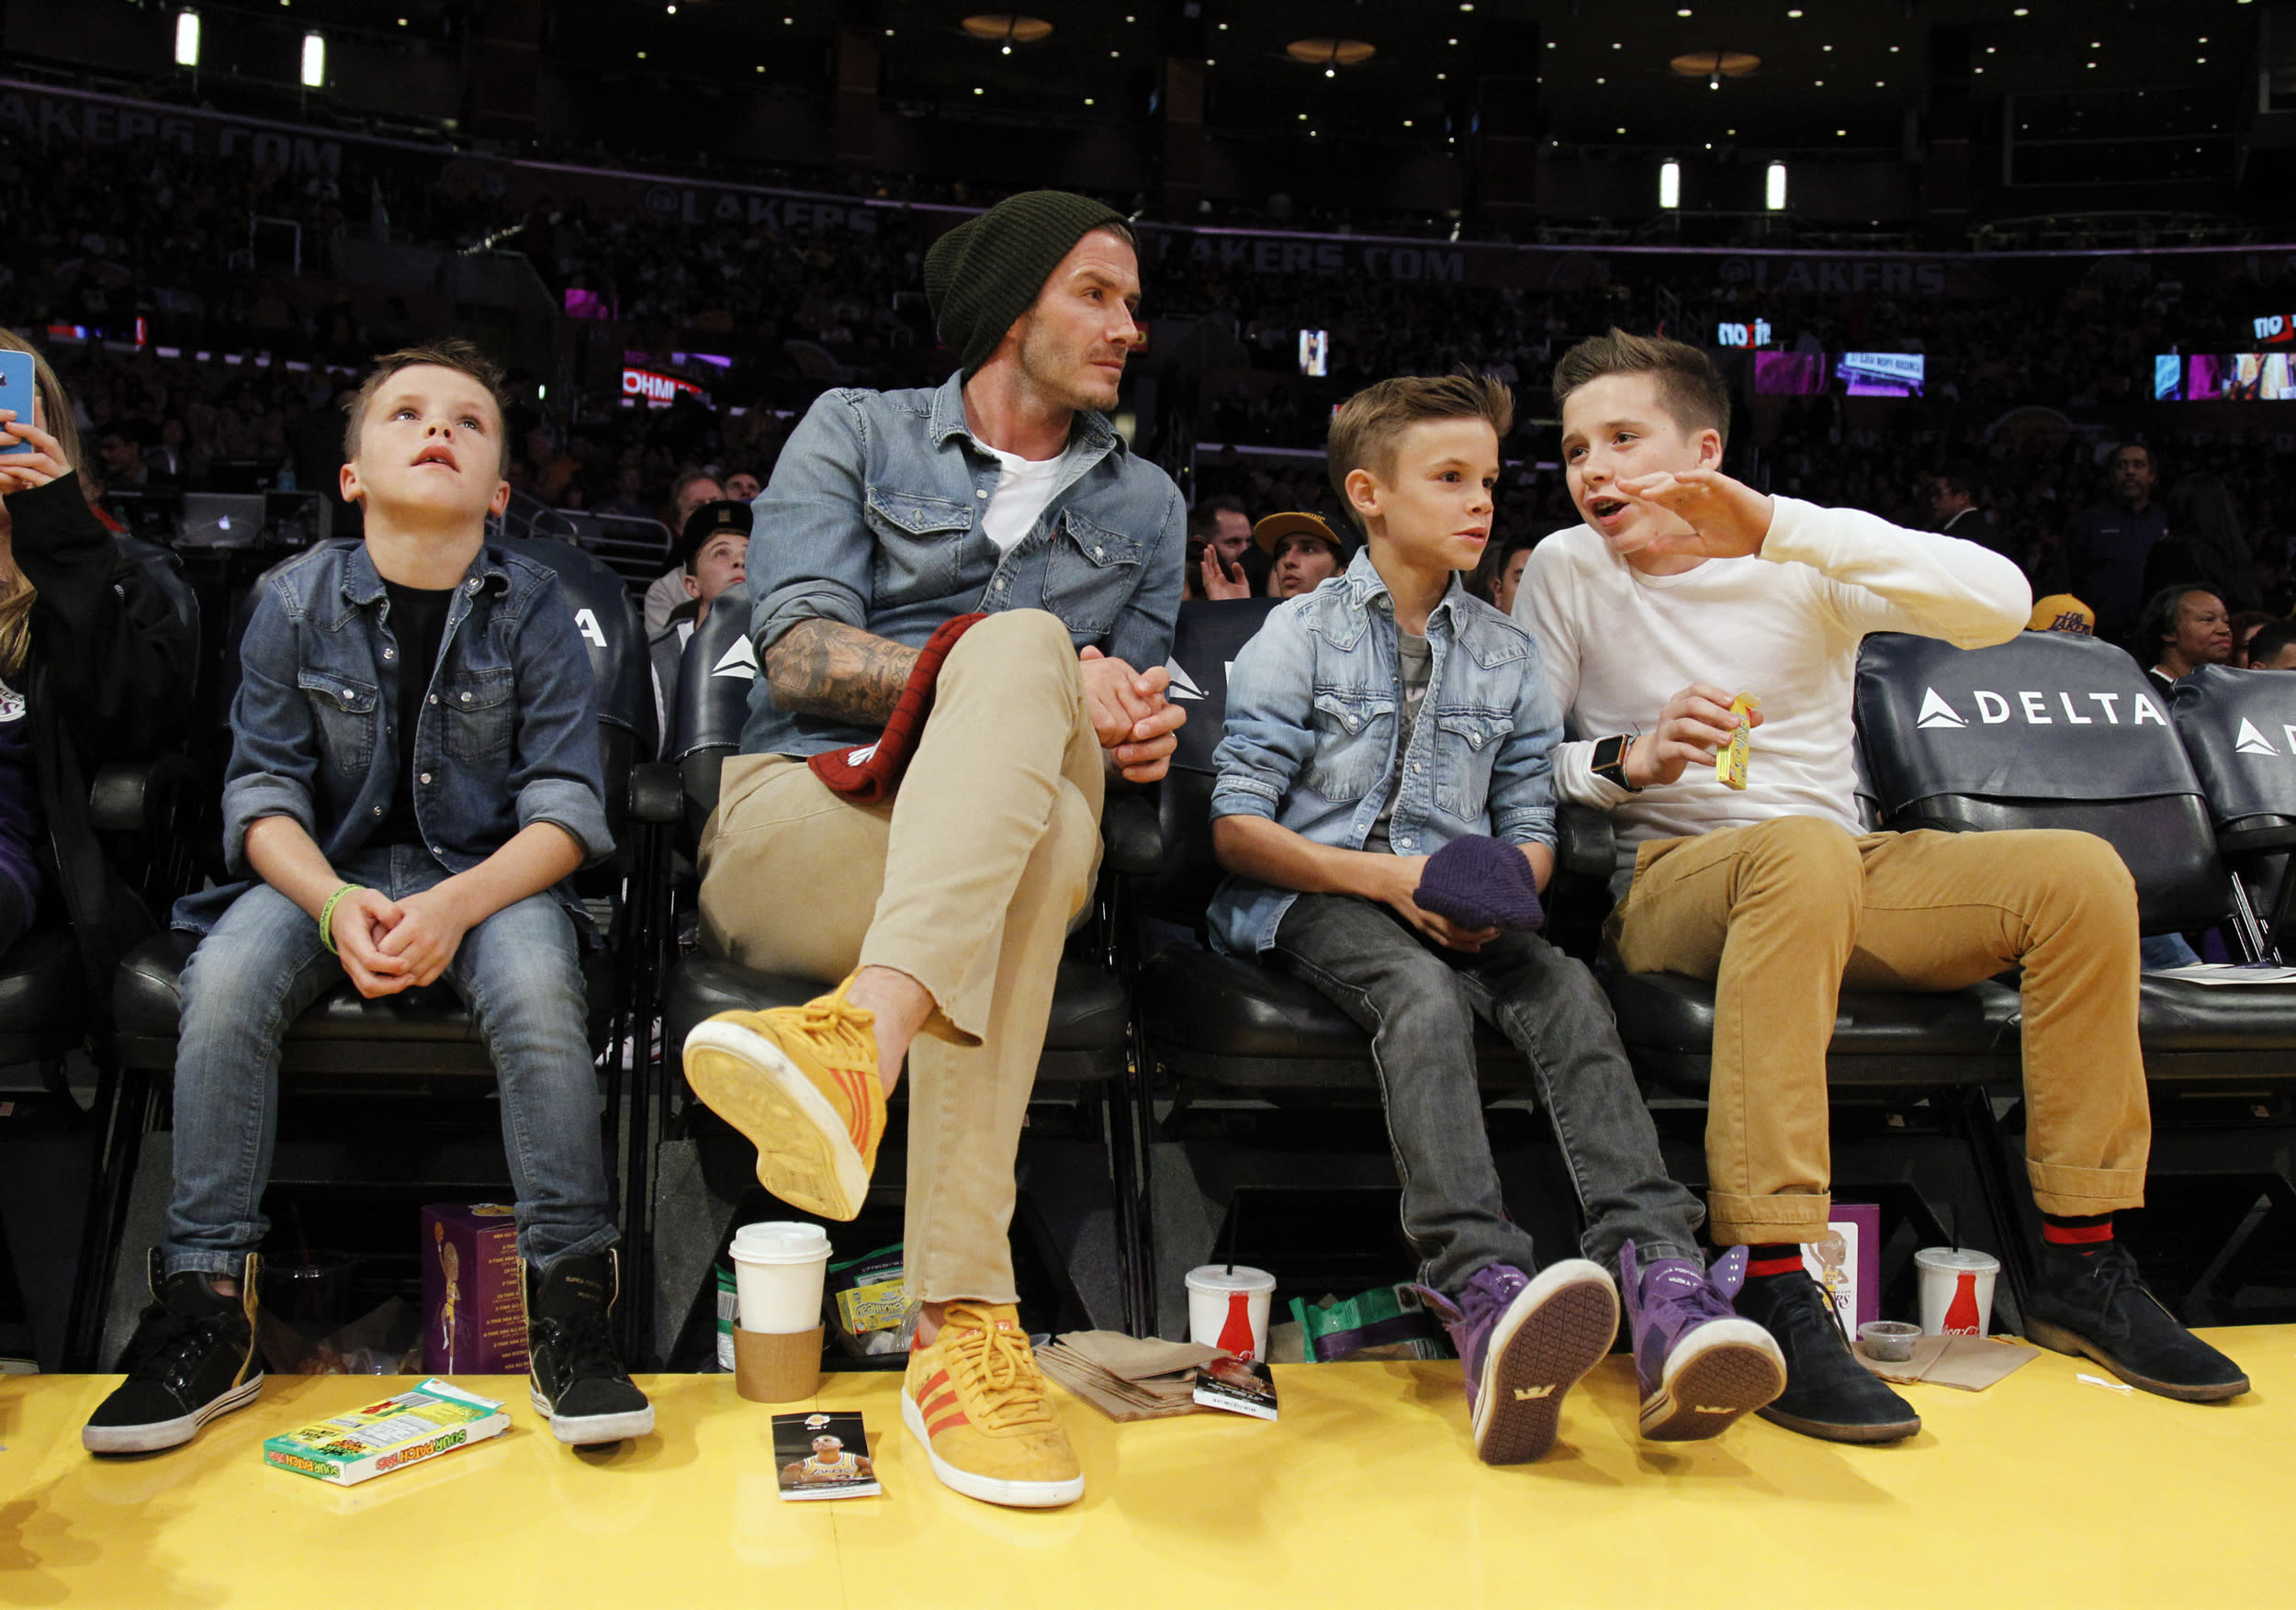 British soccer player David Beckham (2nd L) sits courtside with his sons Cruz (L), Romeo (2nd R) and Brooklyn (R) during the NBA basketball game between the Los Angeles Lakers and Phoenix Suns in Los Angeles November 16, 2012. REUTERS/Danny Moloshok (UNITED STATES - Tags: SPORT BASKETBALL ENTERTAINMENT SOCCER)